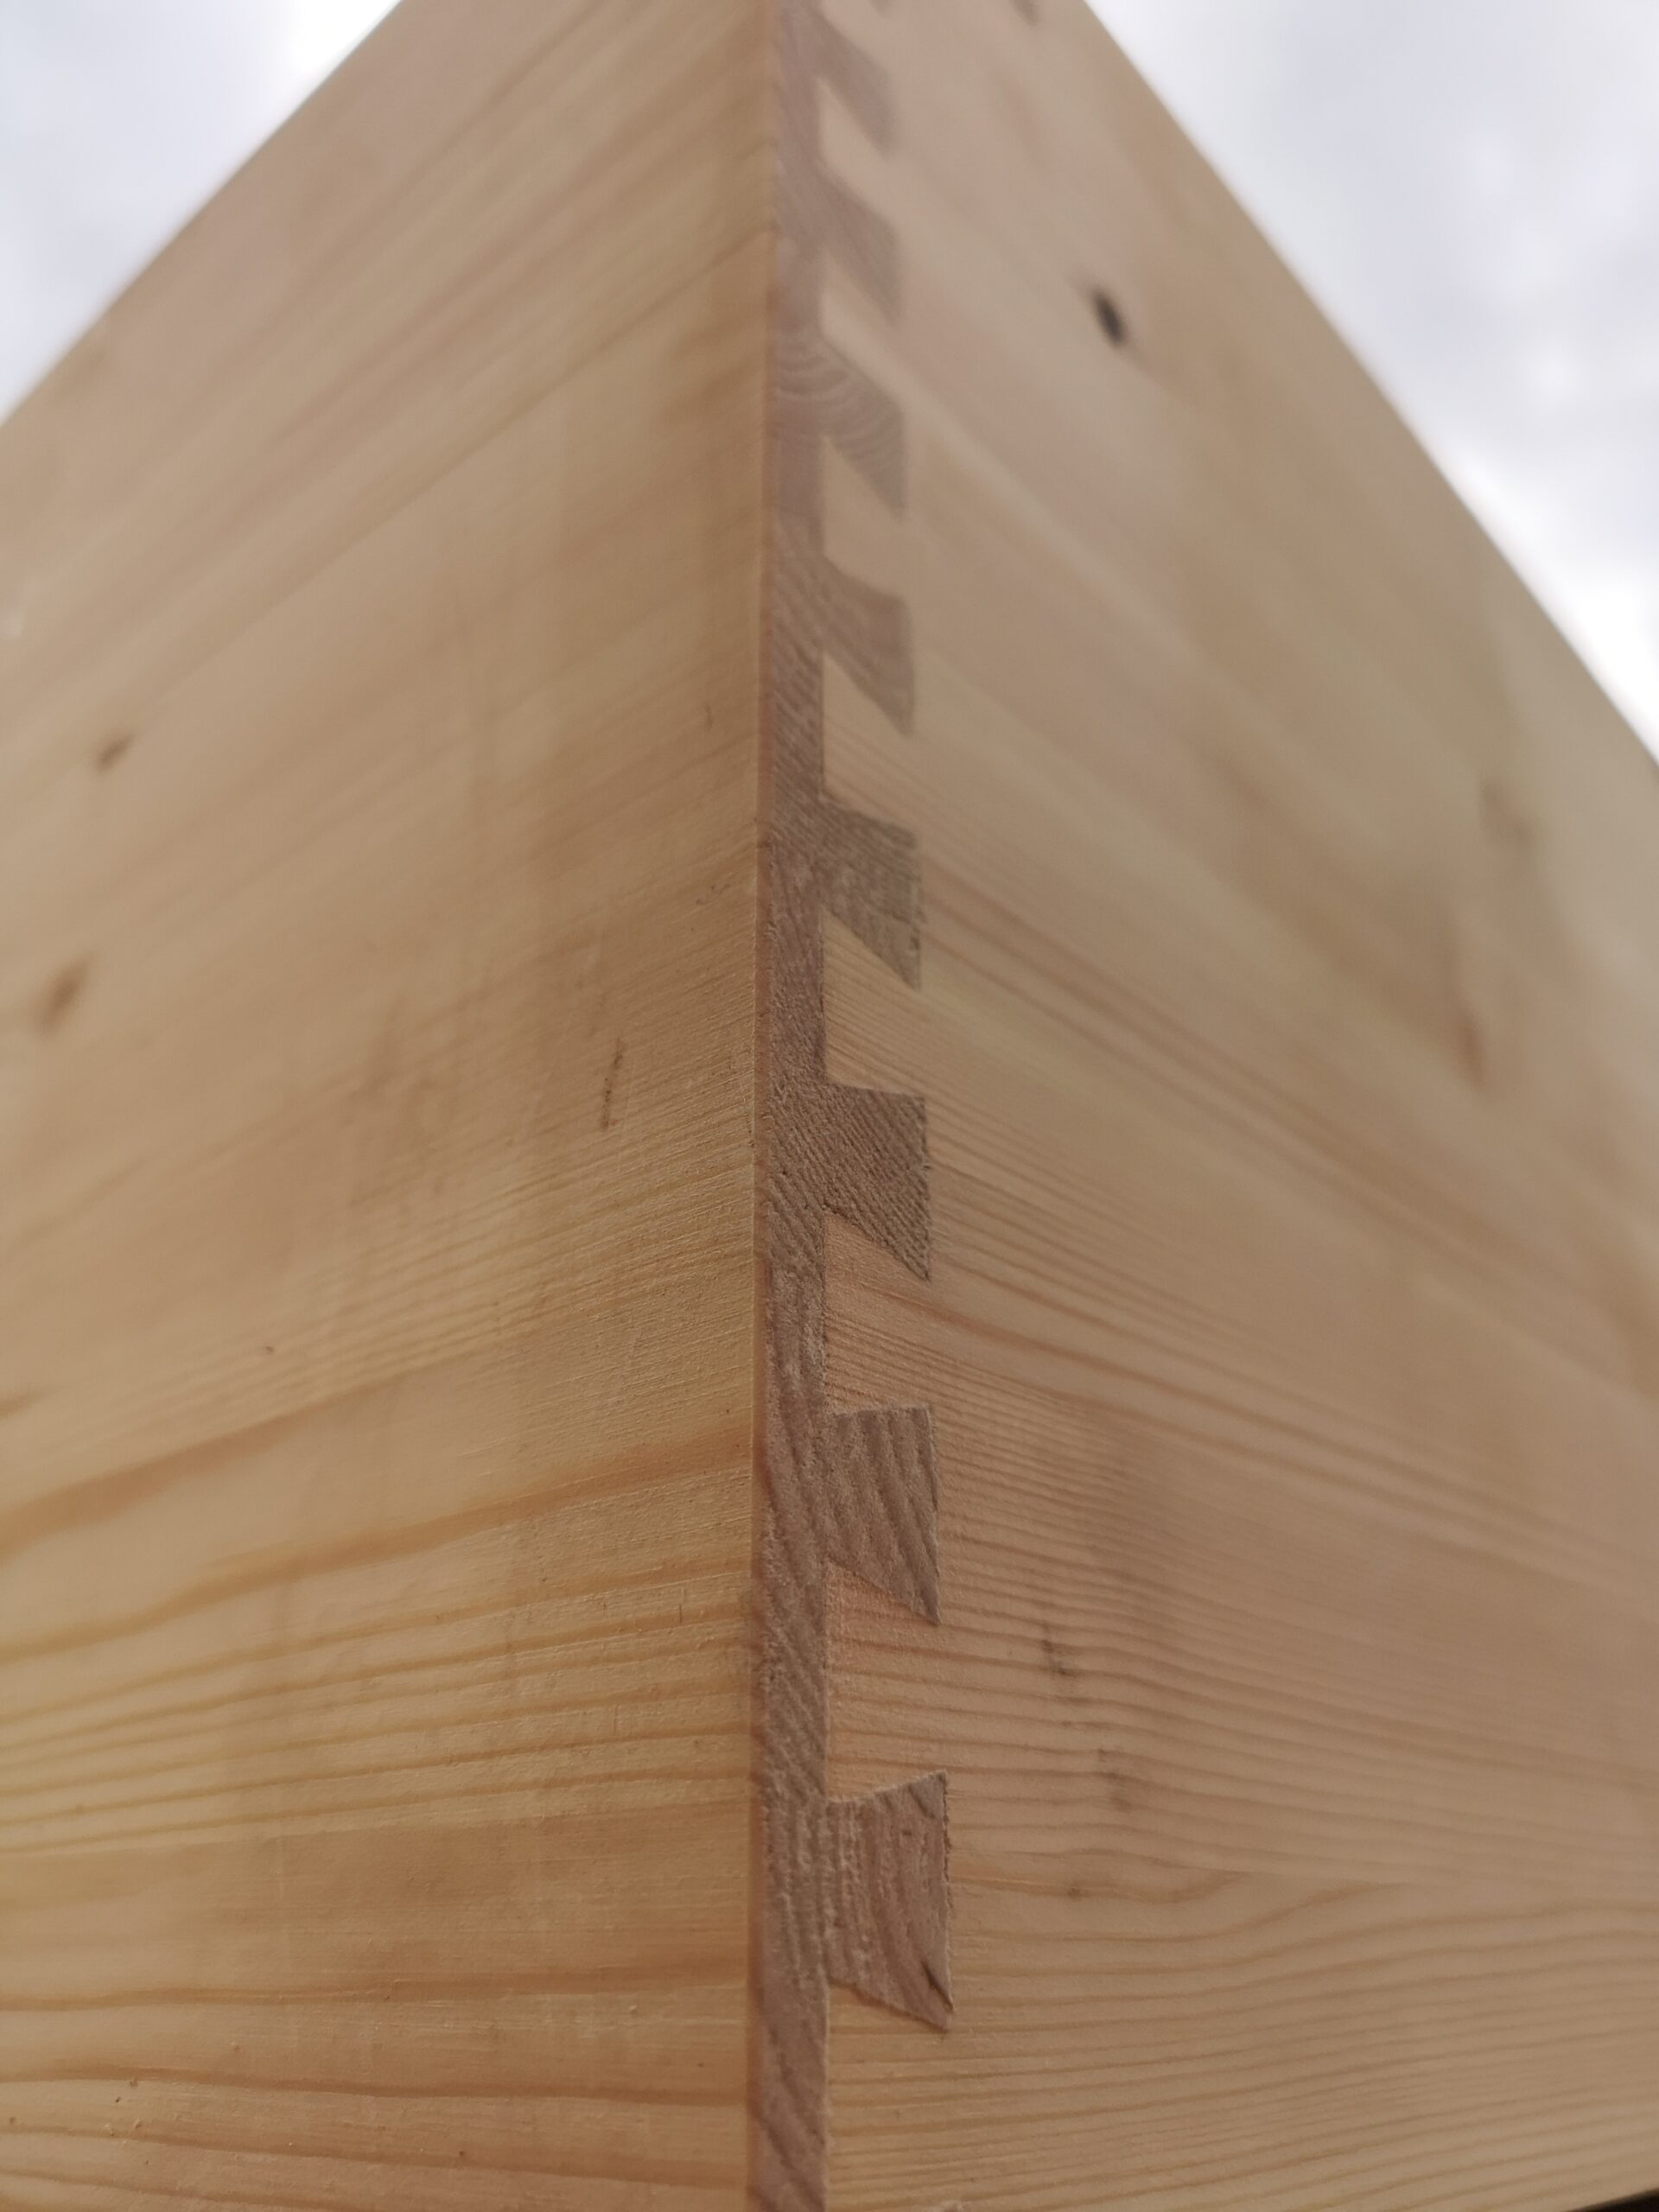 whelping box dovetail joint pine